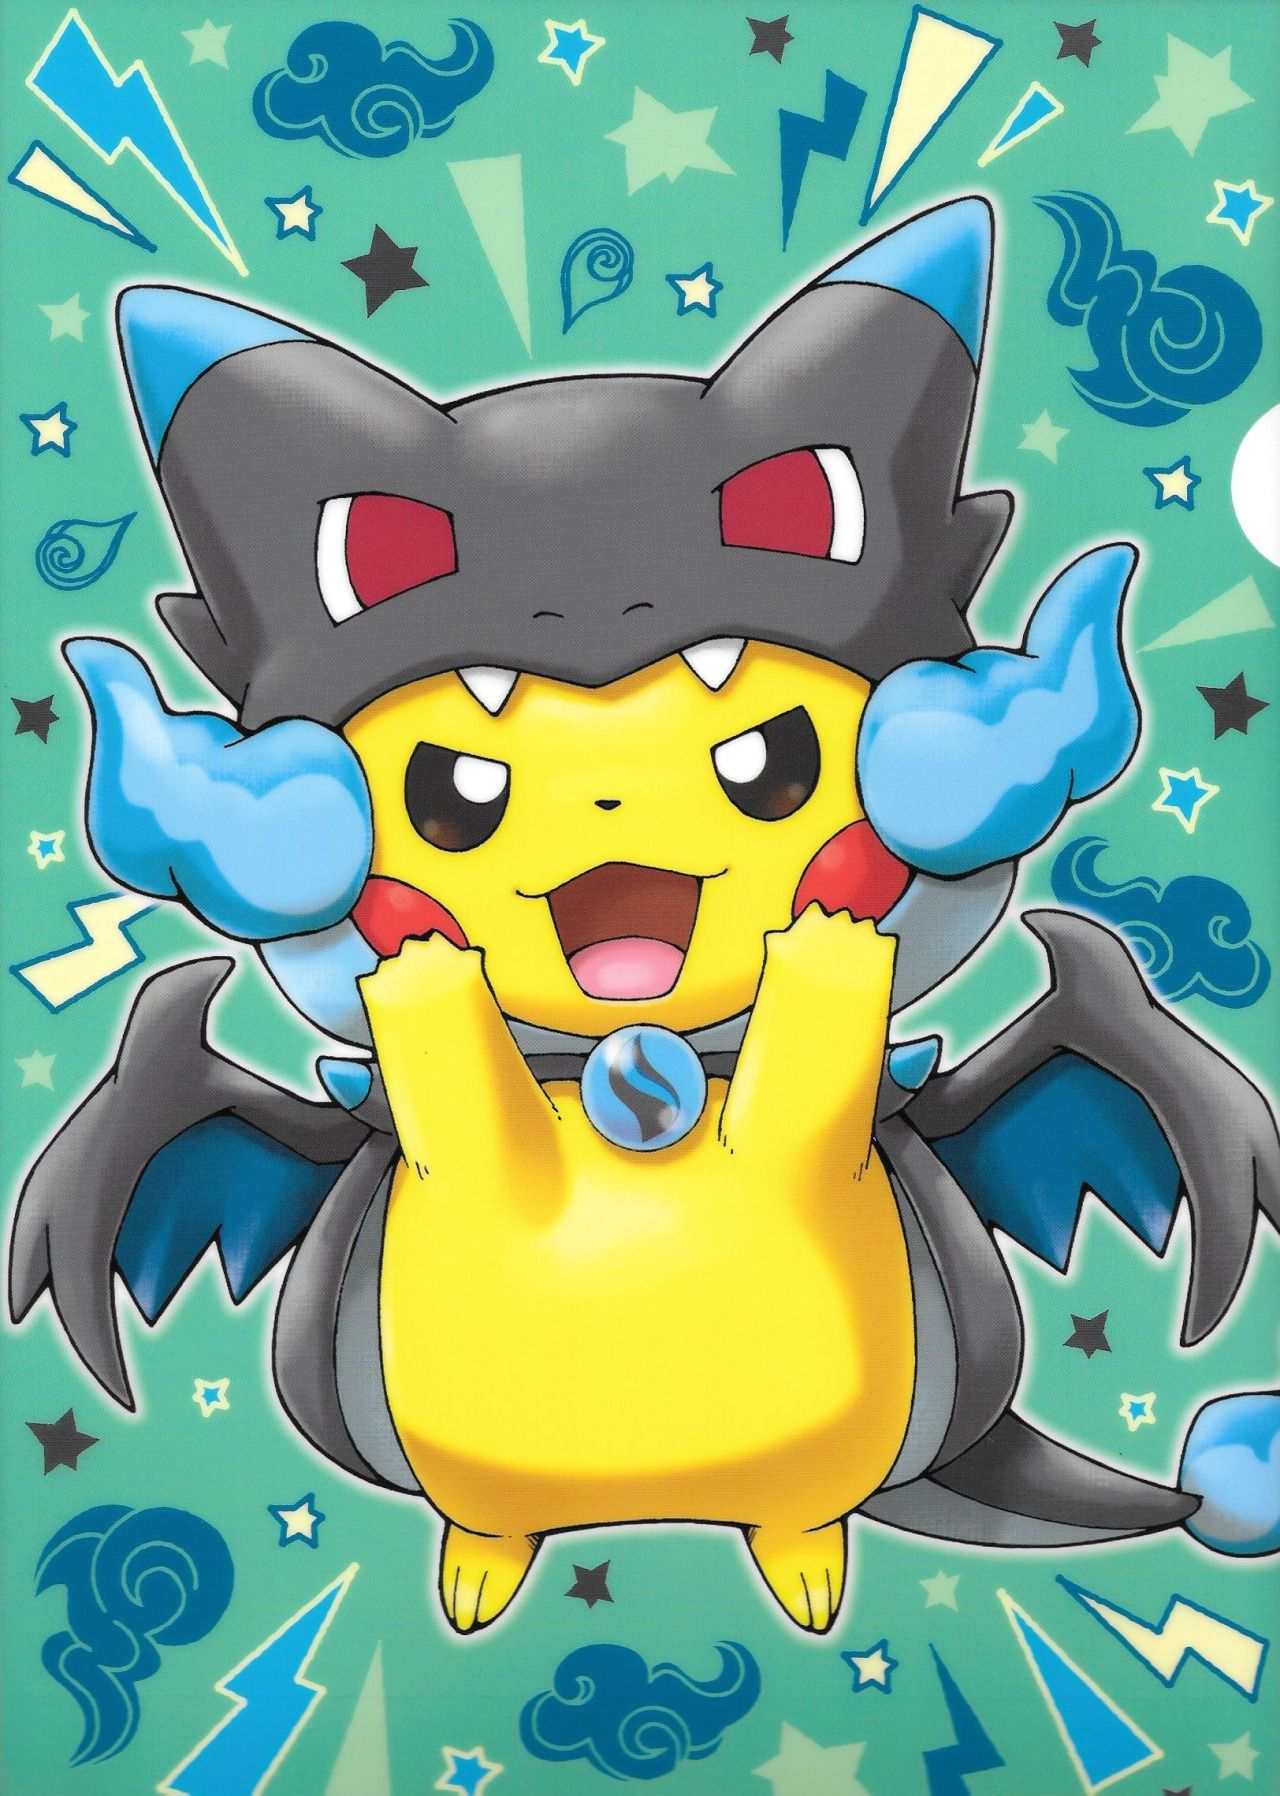 Pikachu mega evolution x